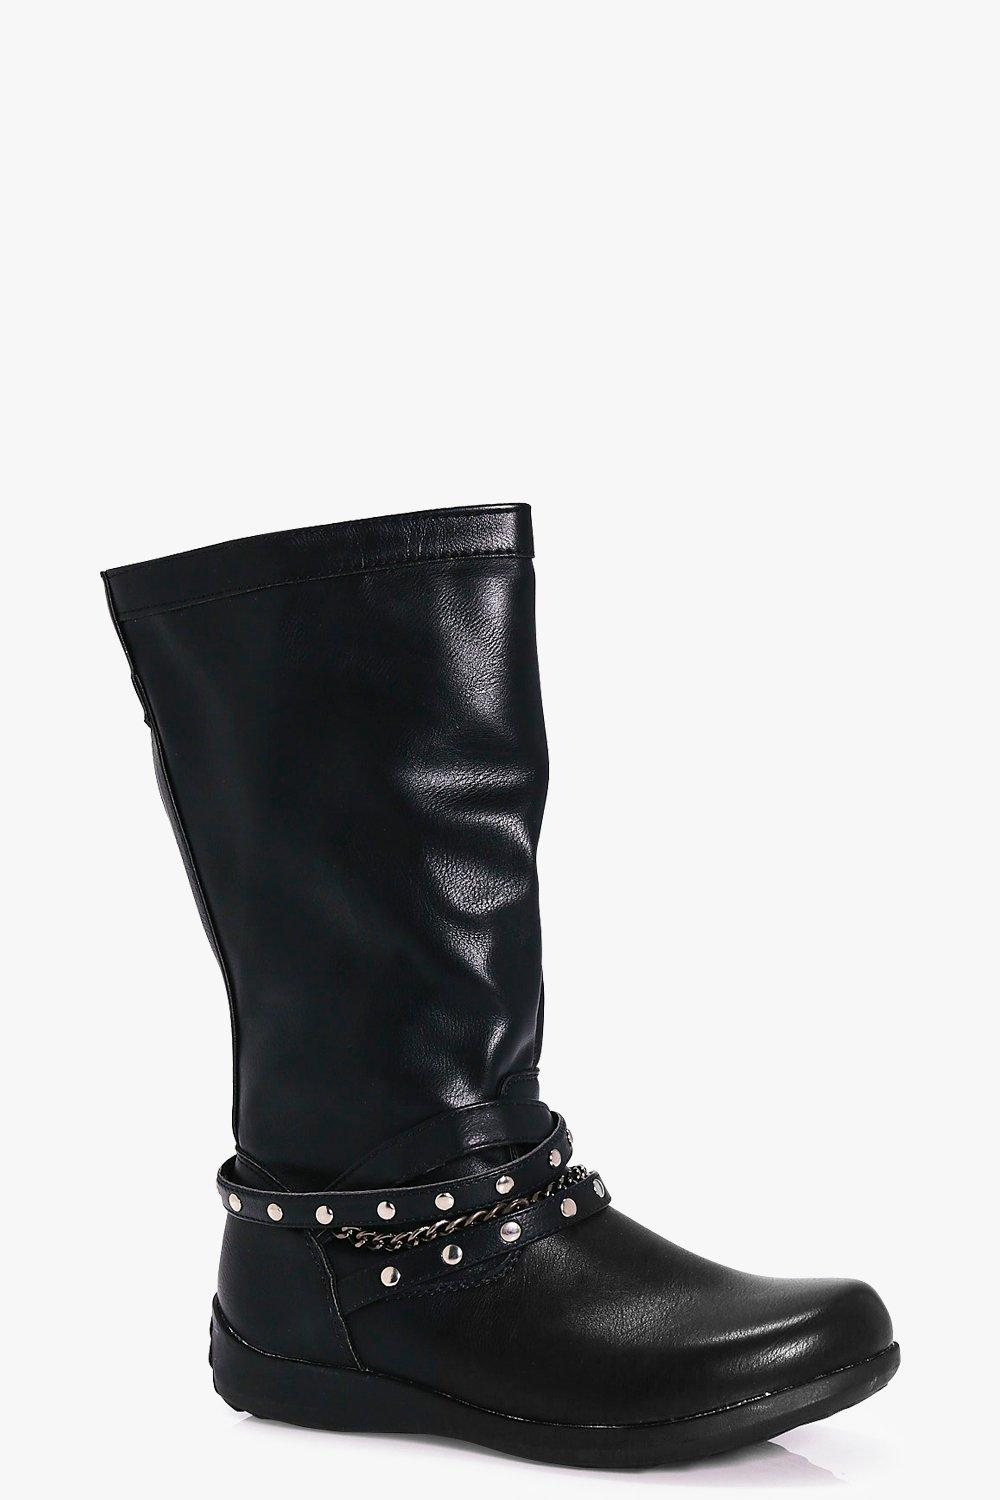 Girls Chain And Stud Trim Knee Boots